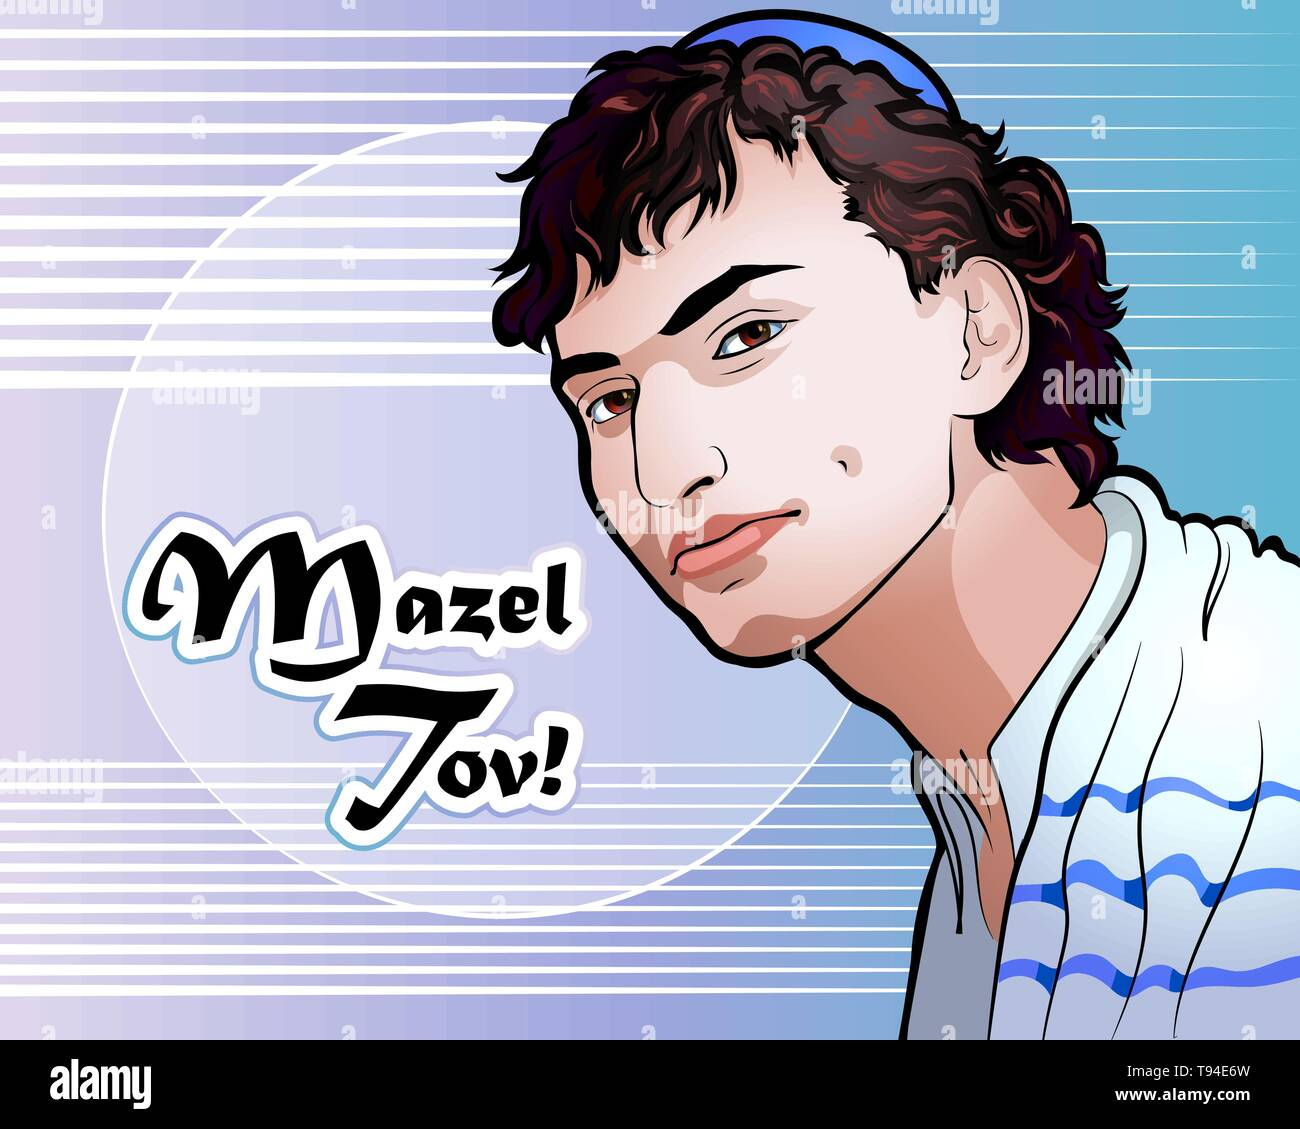 Vector illustration - a portrait of a beautiful Jewish youth - Stock Vector